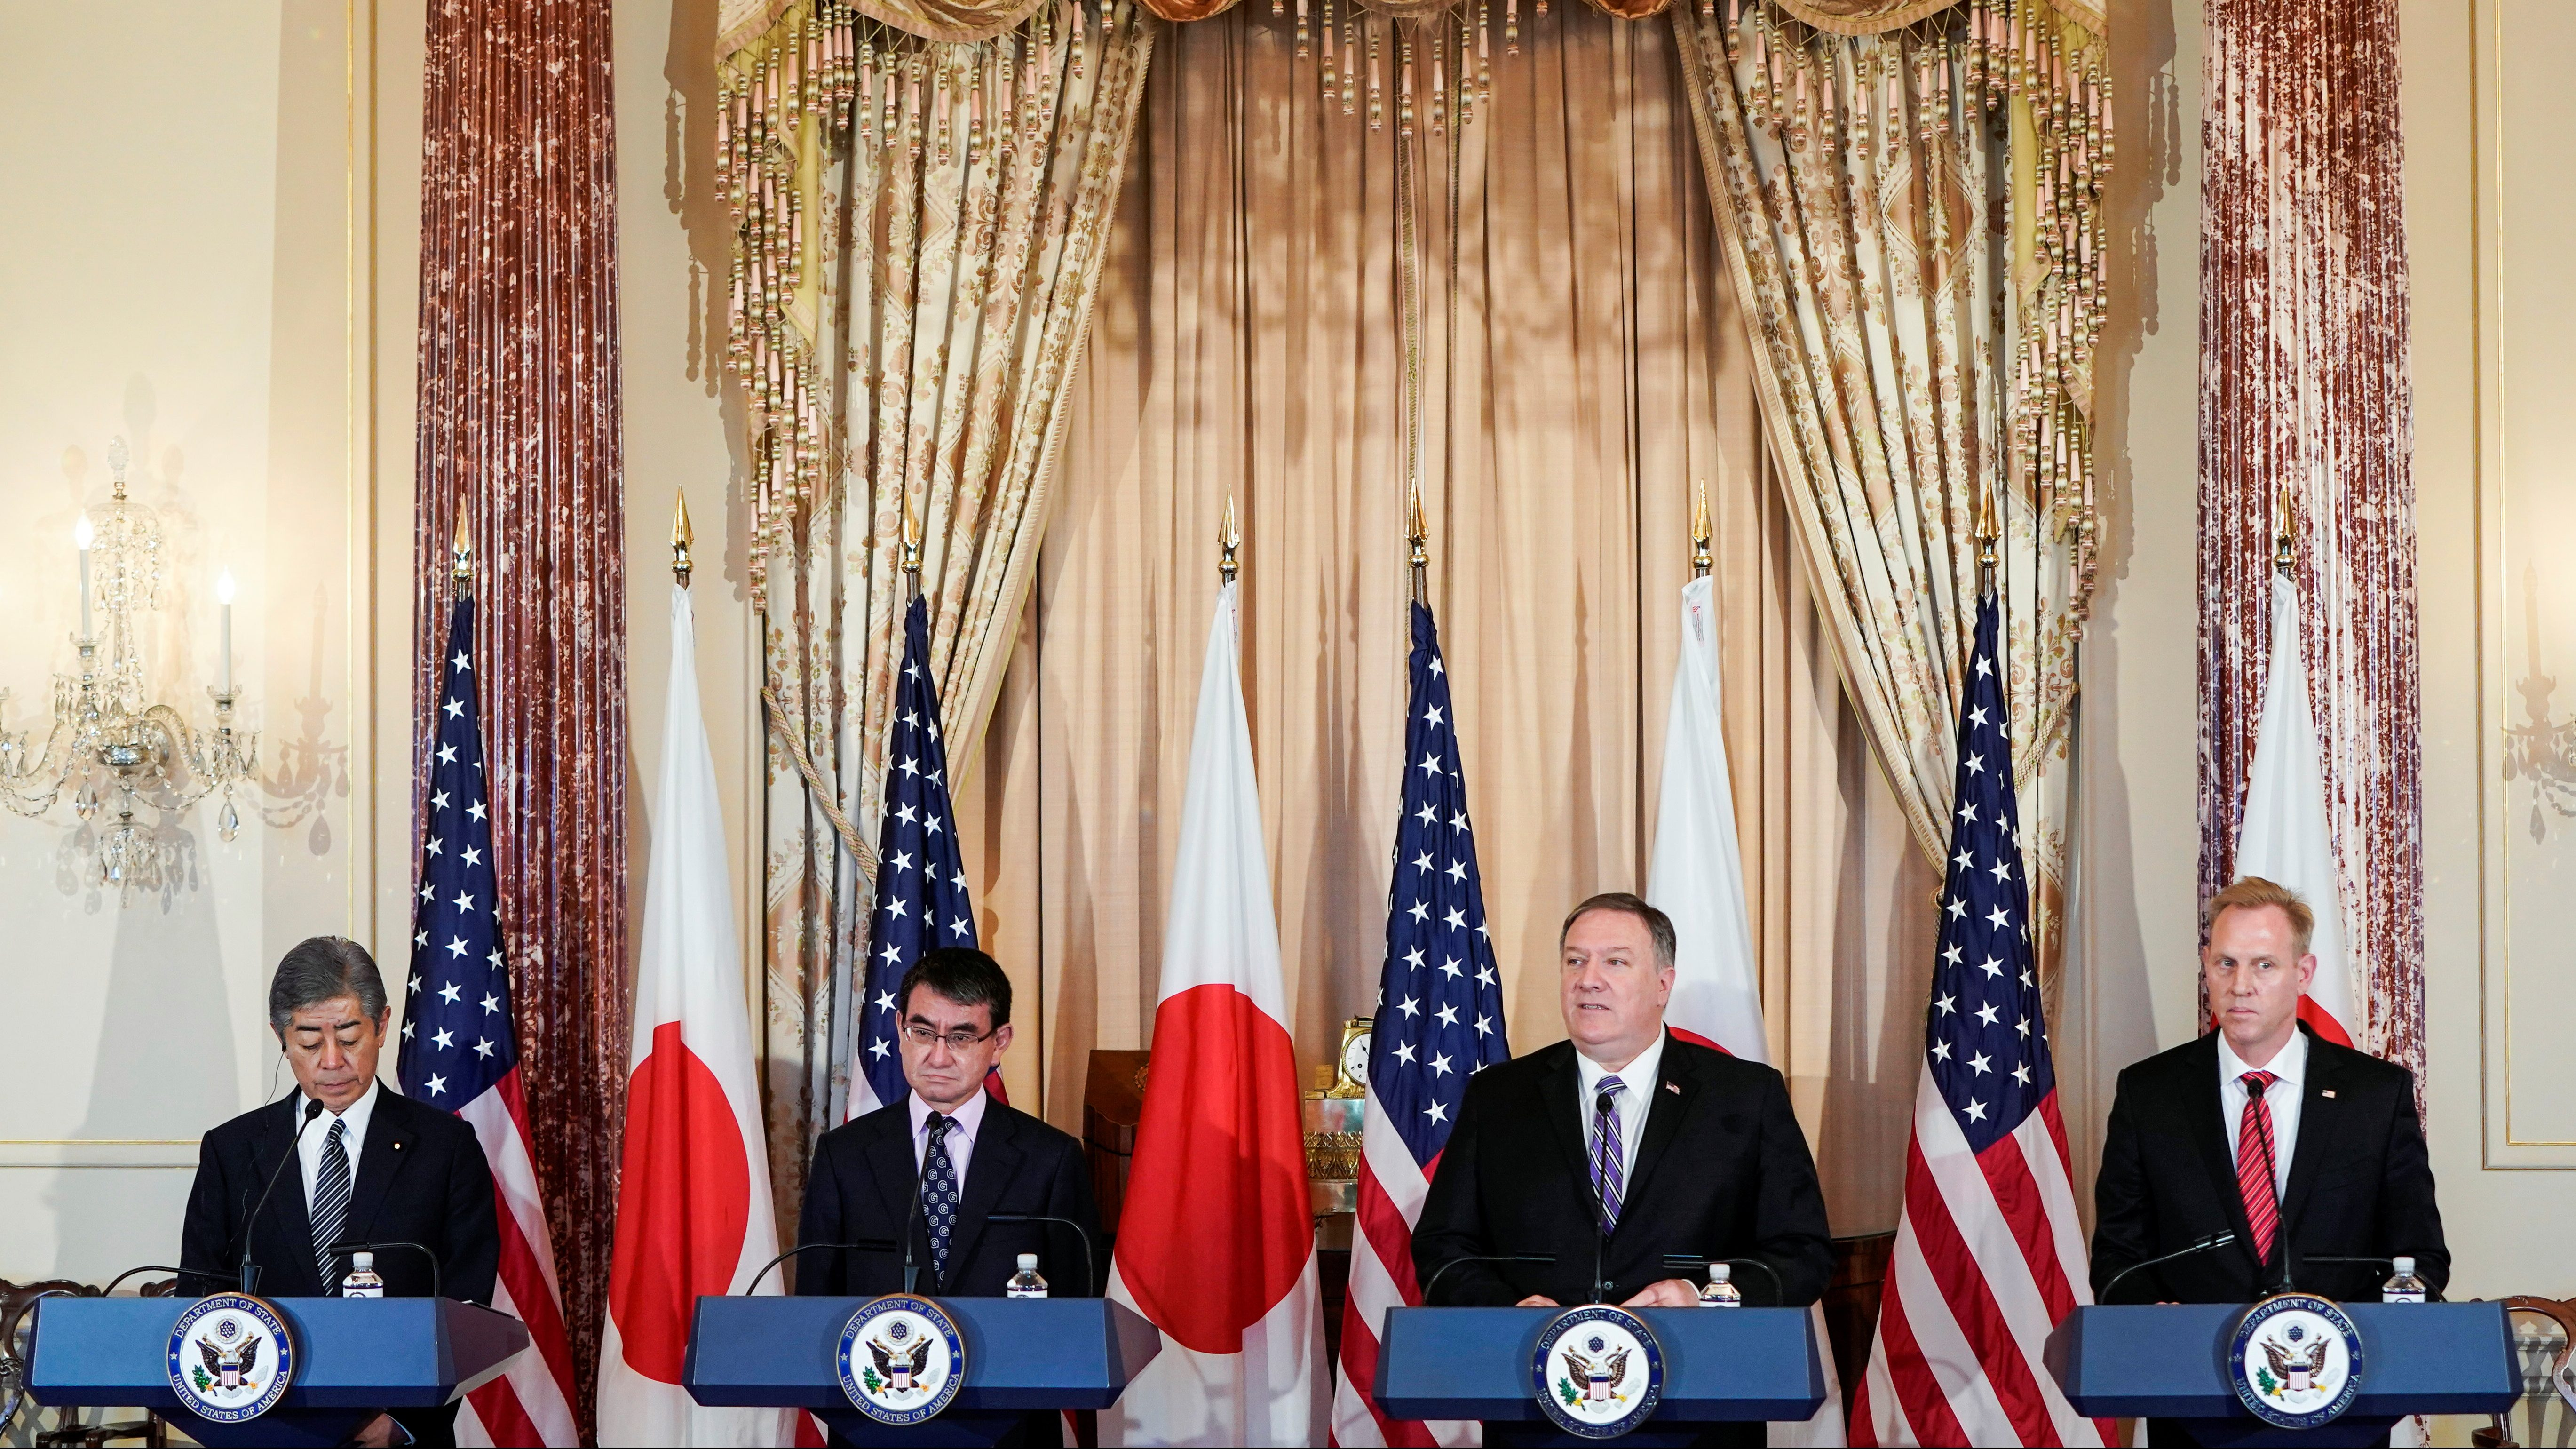 Japanese Defense Minister Takeshi Iwaya, Japanese Foreign Minister Taro Kono, U.S. Secretary of State Mike Pompeo and Acting U.S. Secretary of Defense Patrick Shanahan speak to the media at the State Department in Washington, U.S., April 19, 2019.